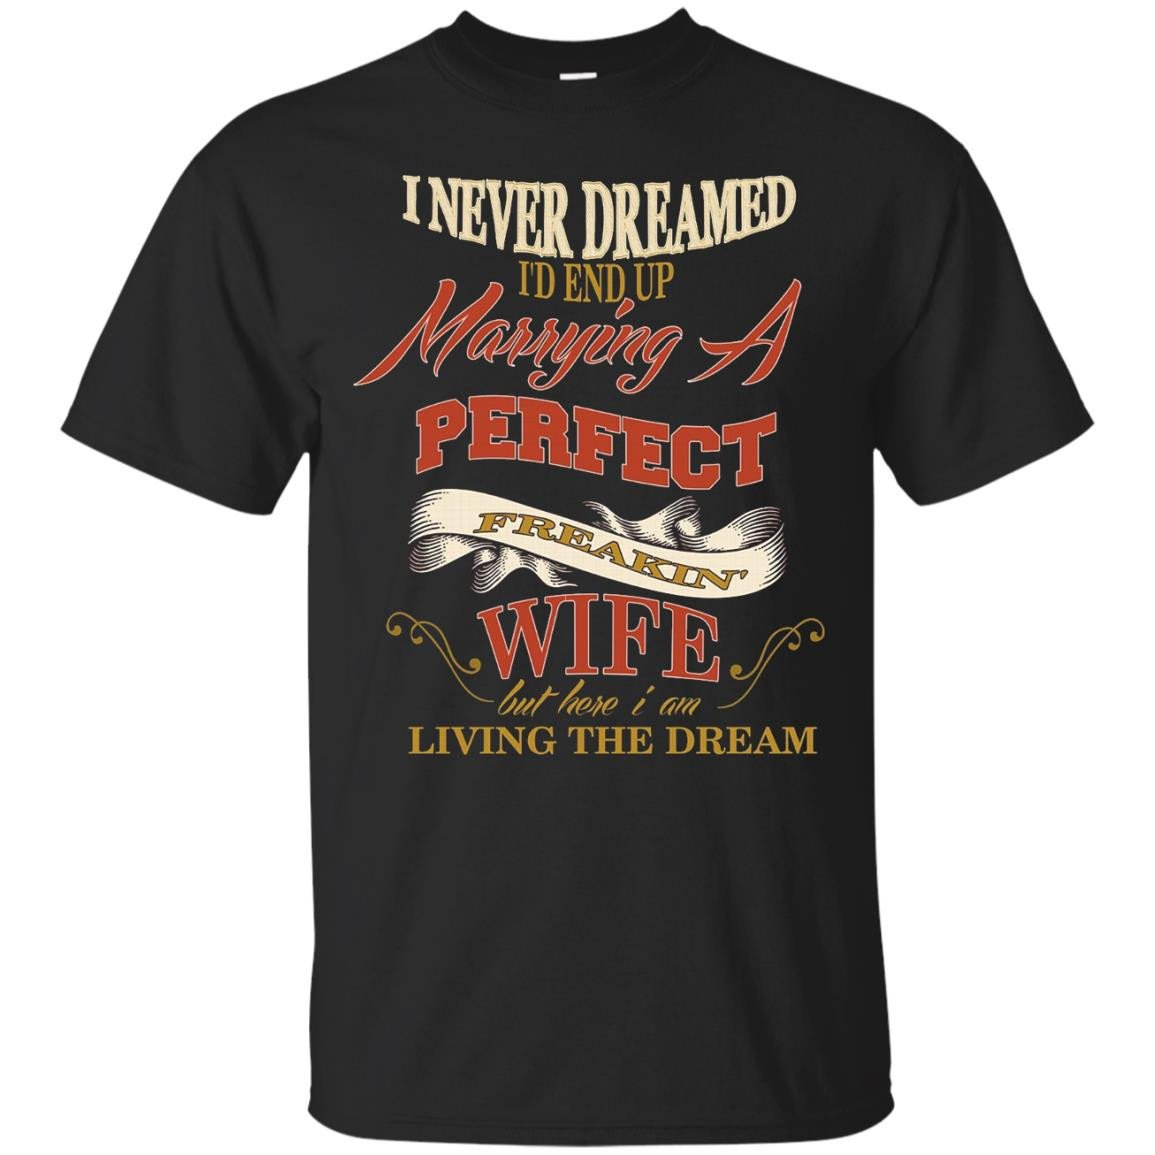 Marrying A Perfect Freakin' Wife Birthday Anniversary TShirt - T-Shirt